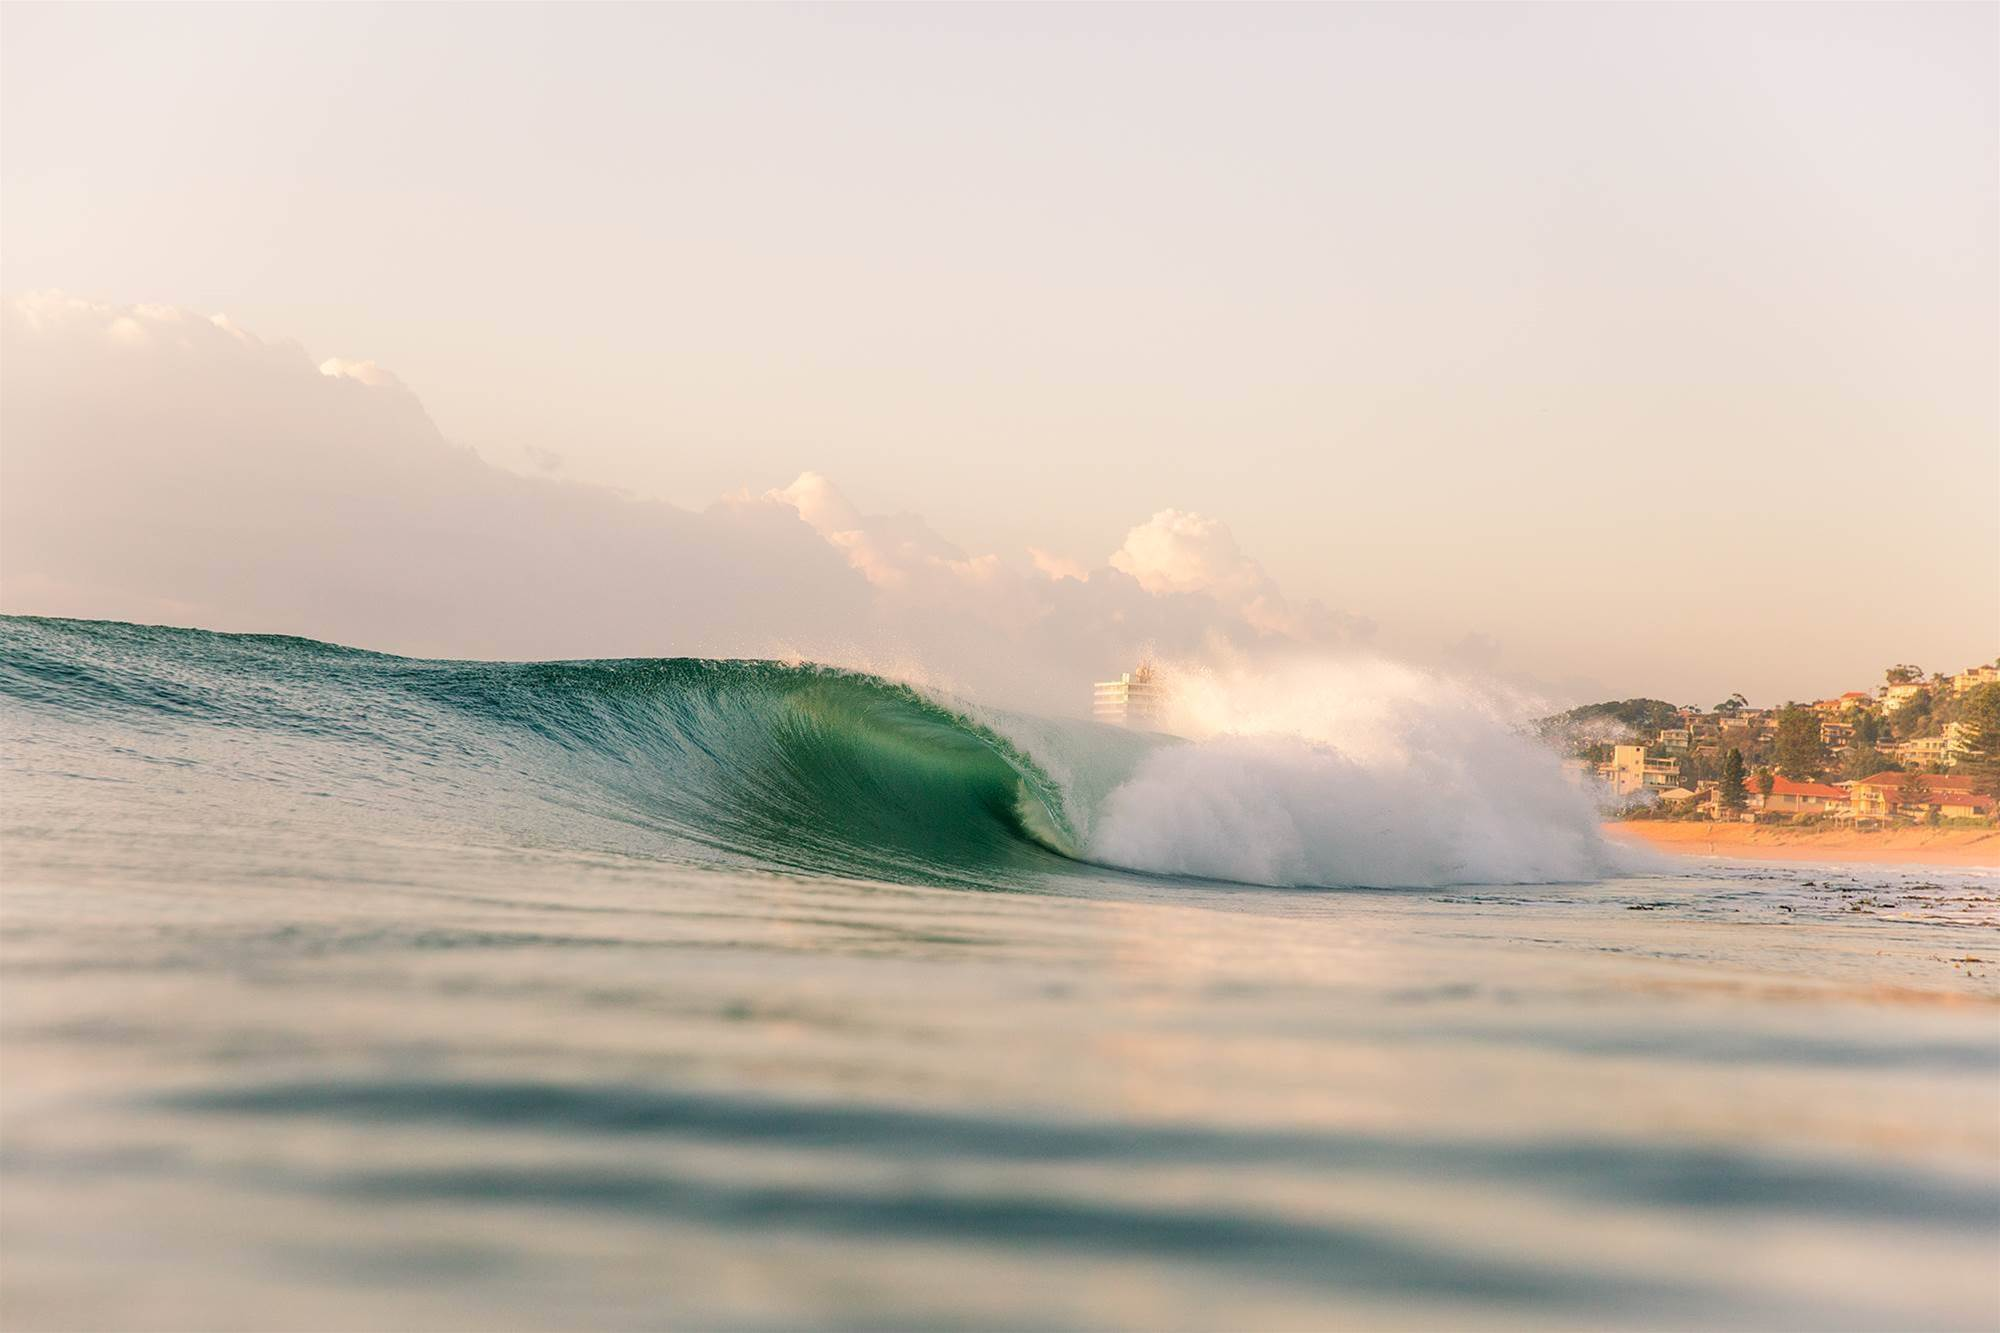 Sydney: The Slow Freezing Of A Surfing Hotbed